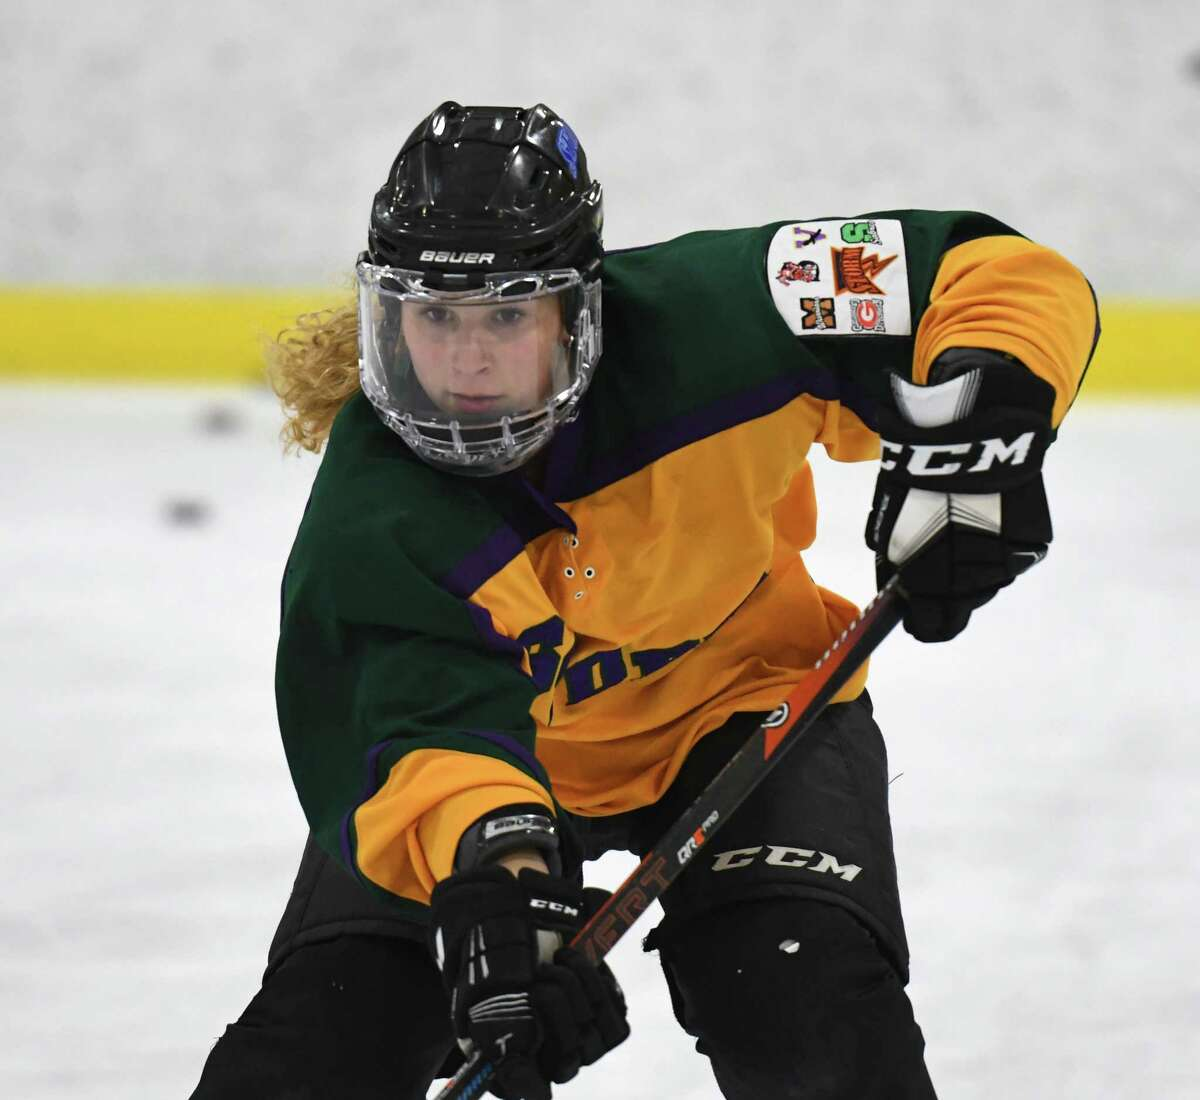 Maddie LeBel works with teammates during ice hockey practice on Friday, Feb. 21, 2020, at the Schenectady Country Rec. Facility in Glenville, N.Y. (Will Waldron/Times Union)